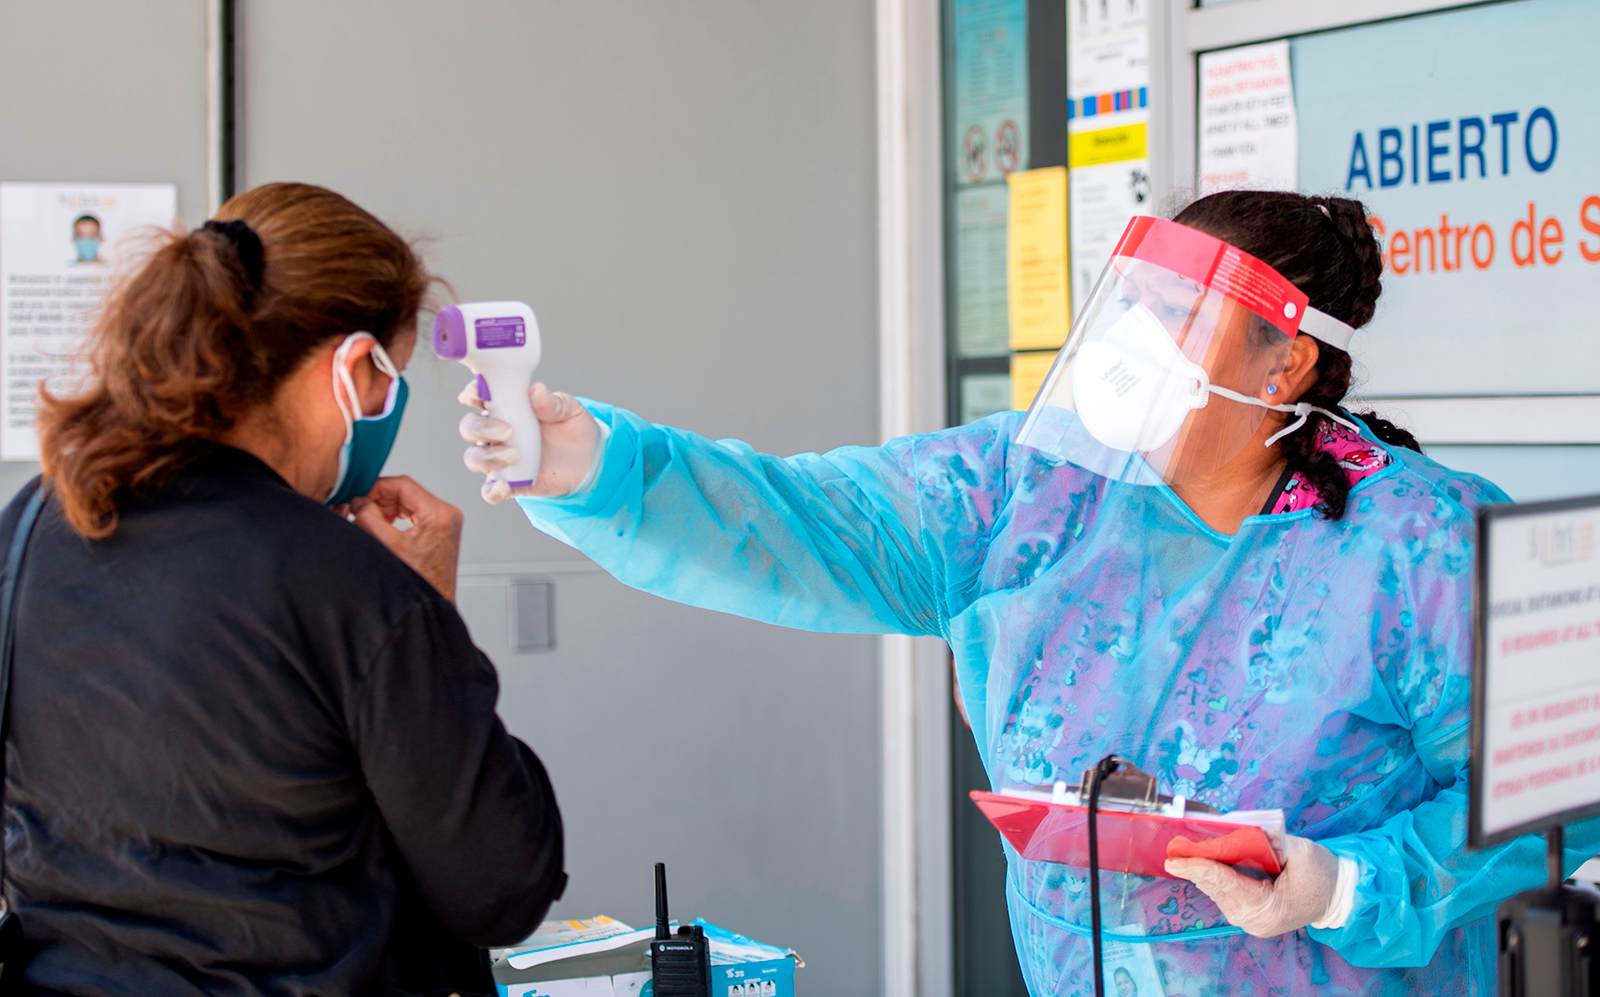 A health worker takes a patient's temperature before sending them to a tent to be tested at a Covid-19 testing site in Los Angeles on July 24.